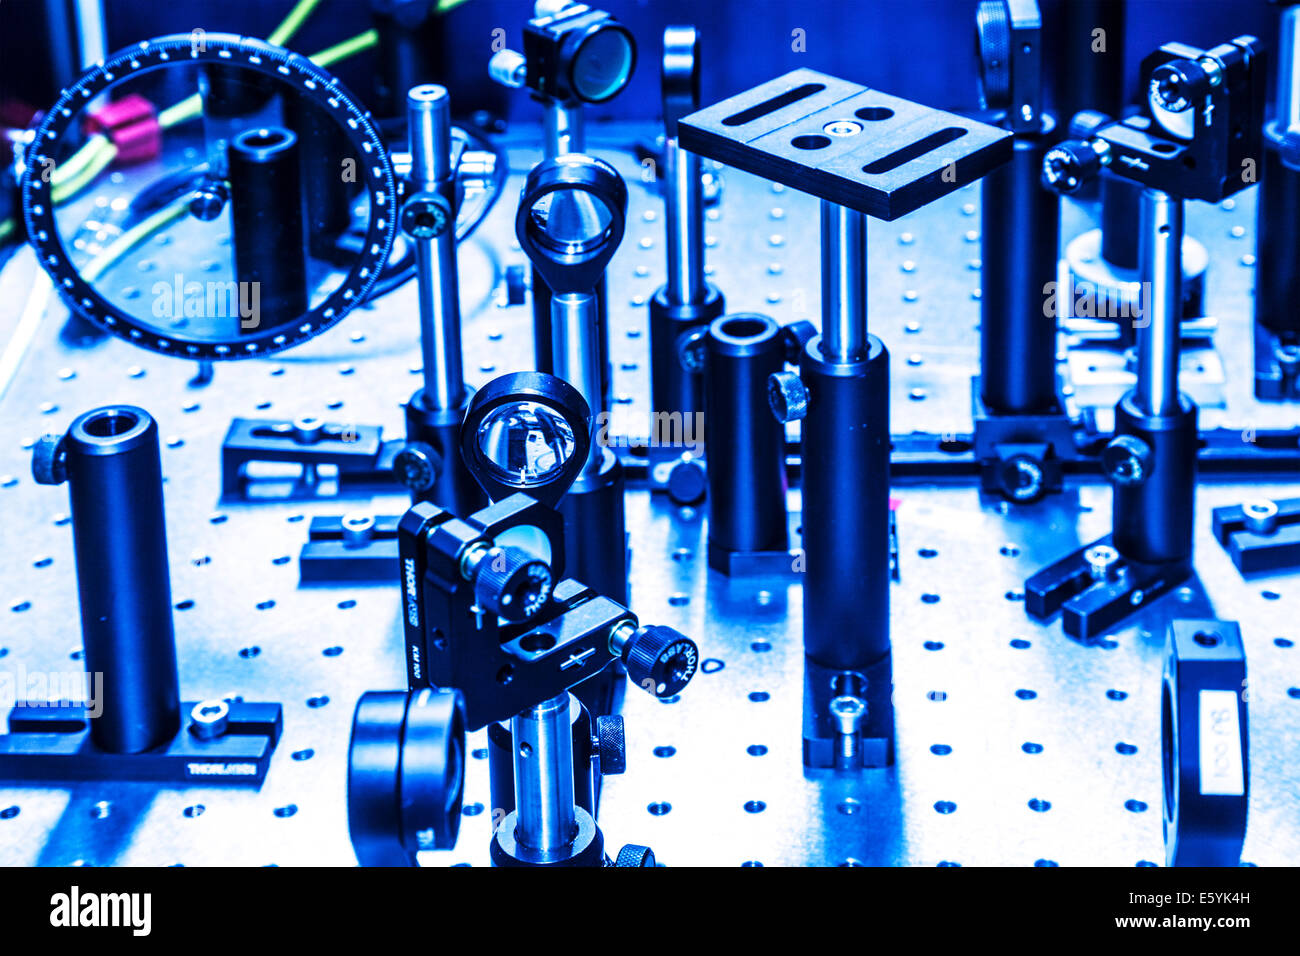 A laser imaging system set up in a science research laboratory. - Stock Image